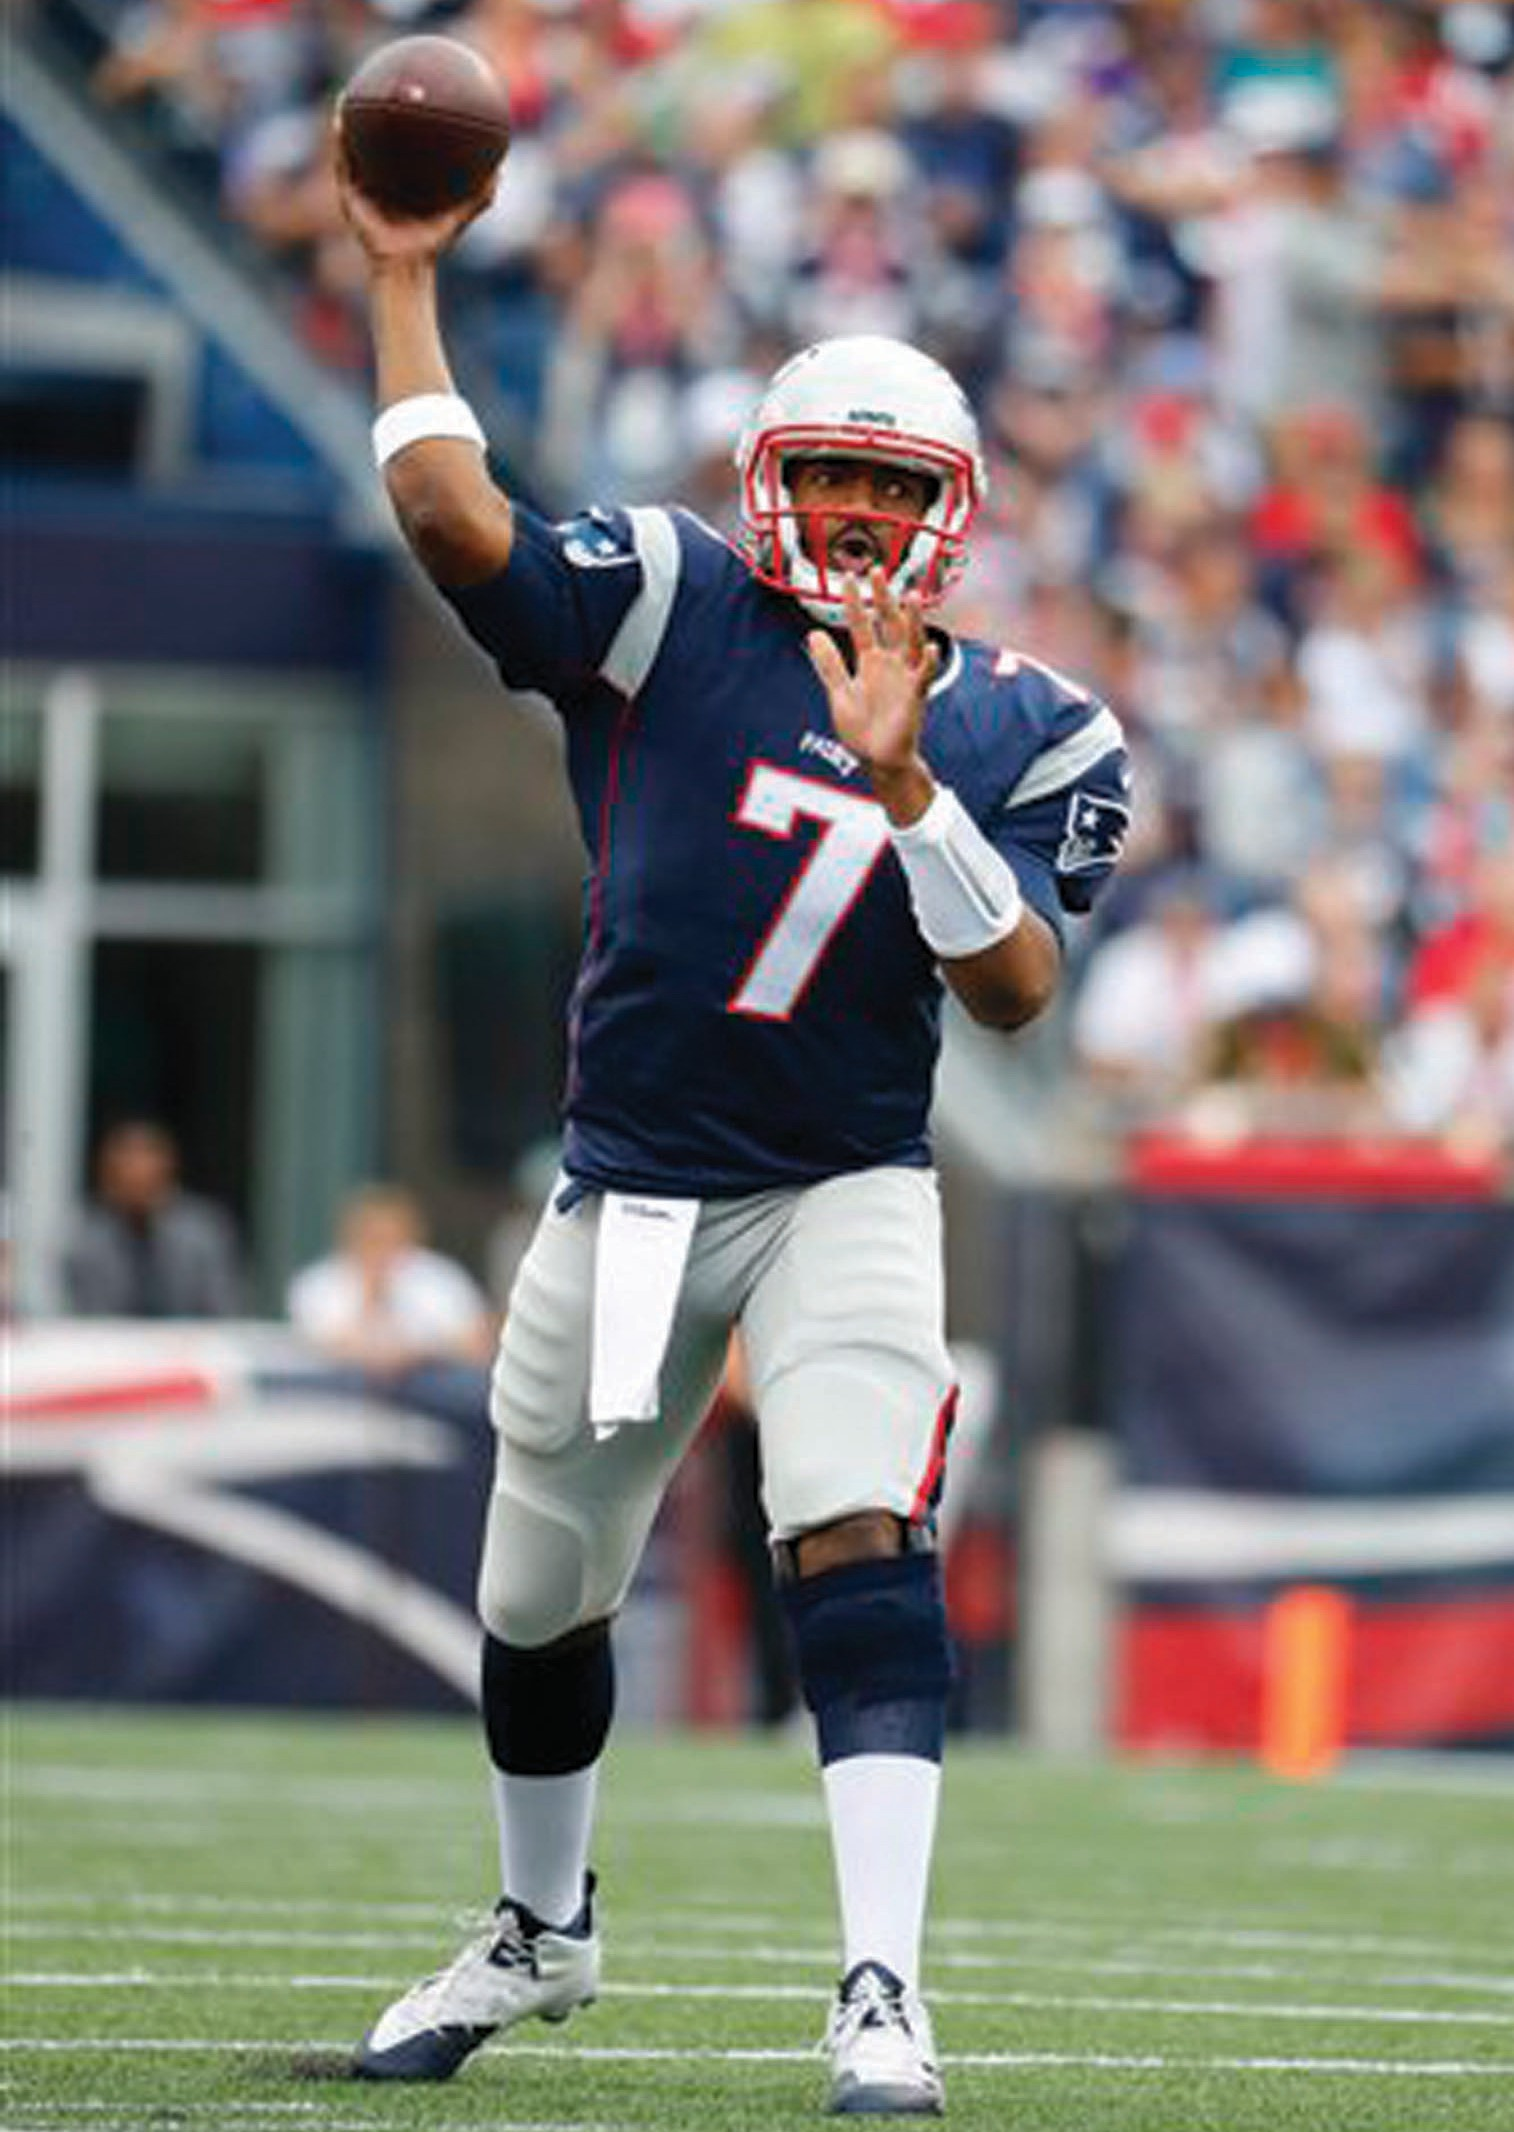 New England Patriots quarterback Jacoby Brissett throws against the Miami Dolphins during a NFL football game at Gillette Stadium in Foxborough, Mass. Sunday, Sept. 18, 2016.